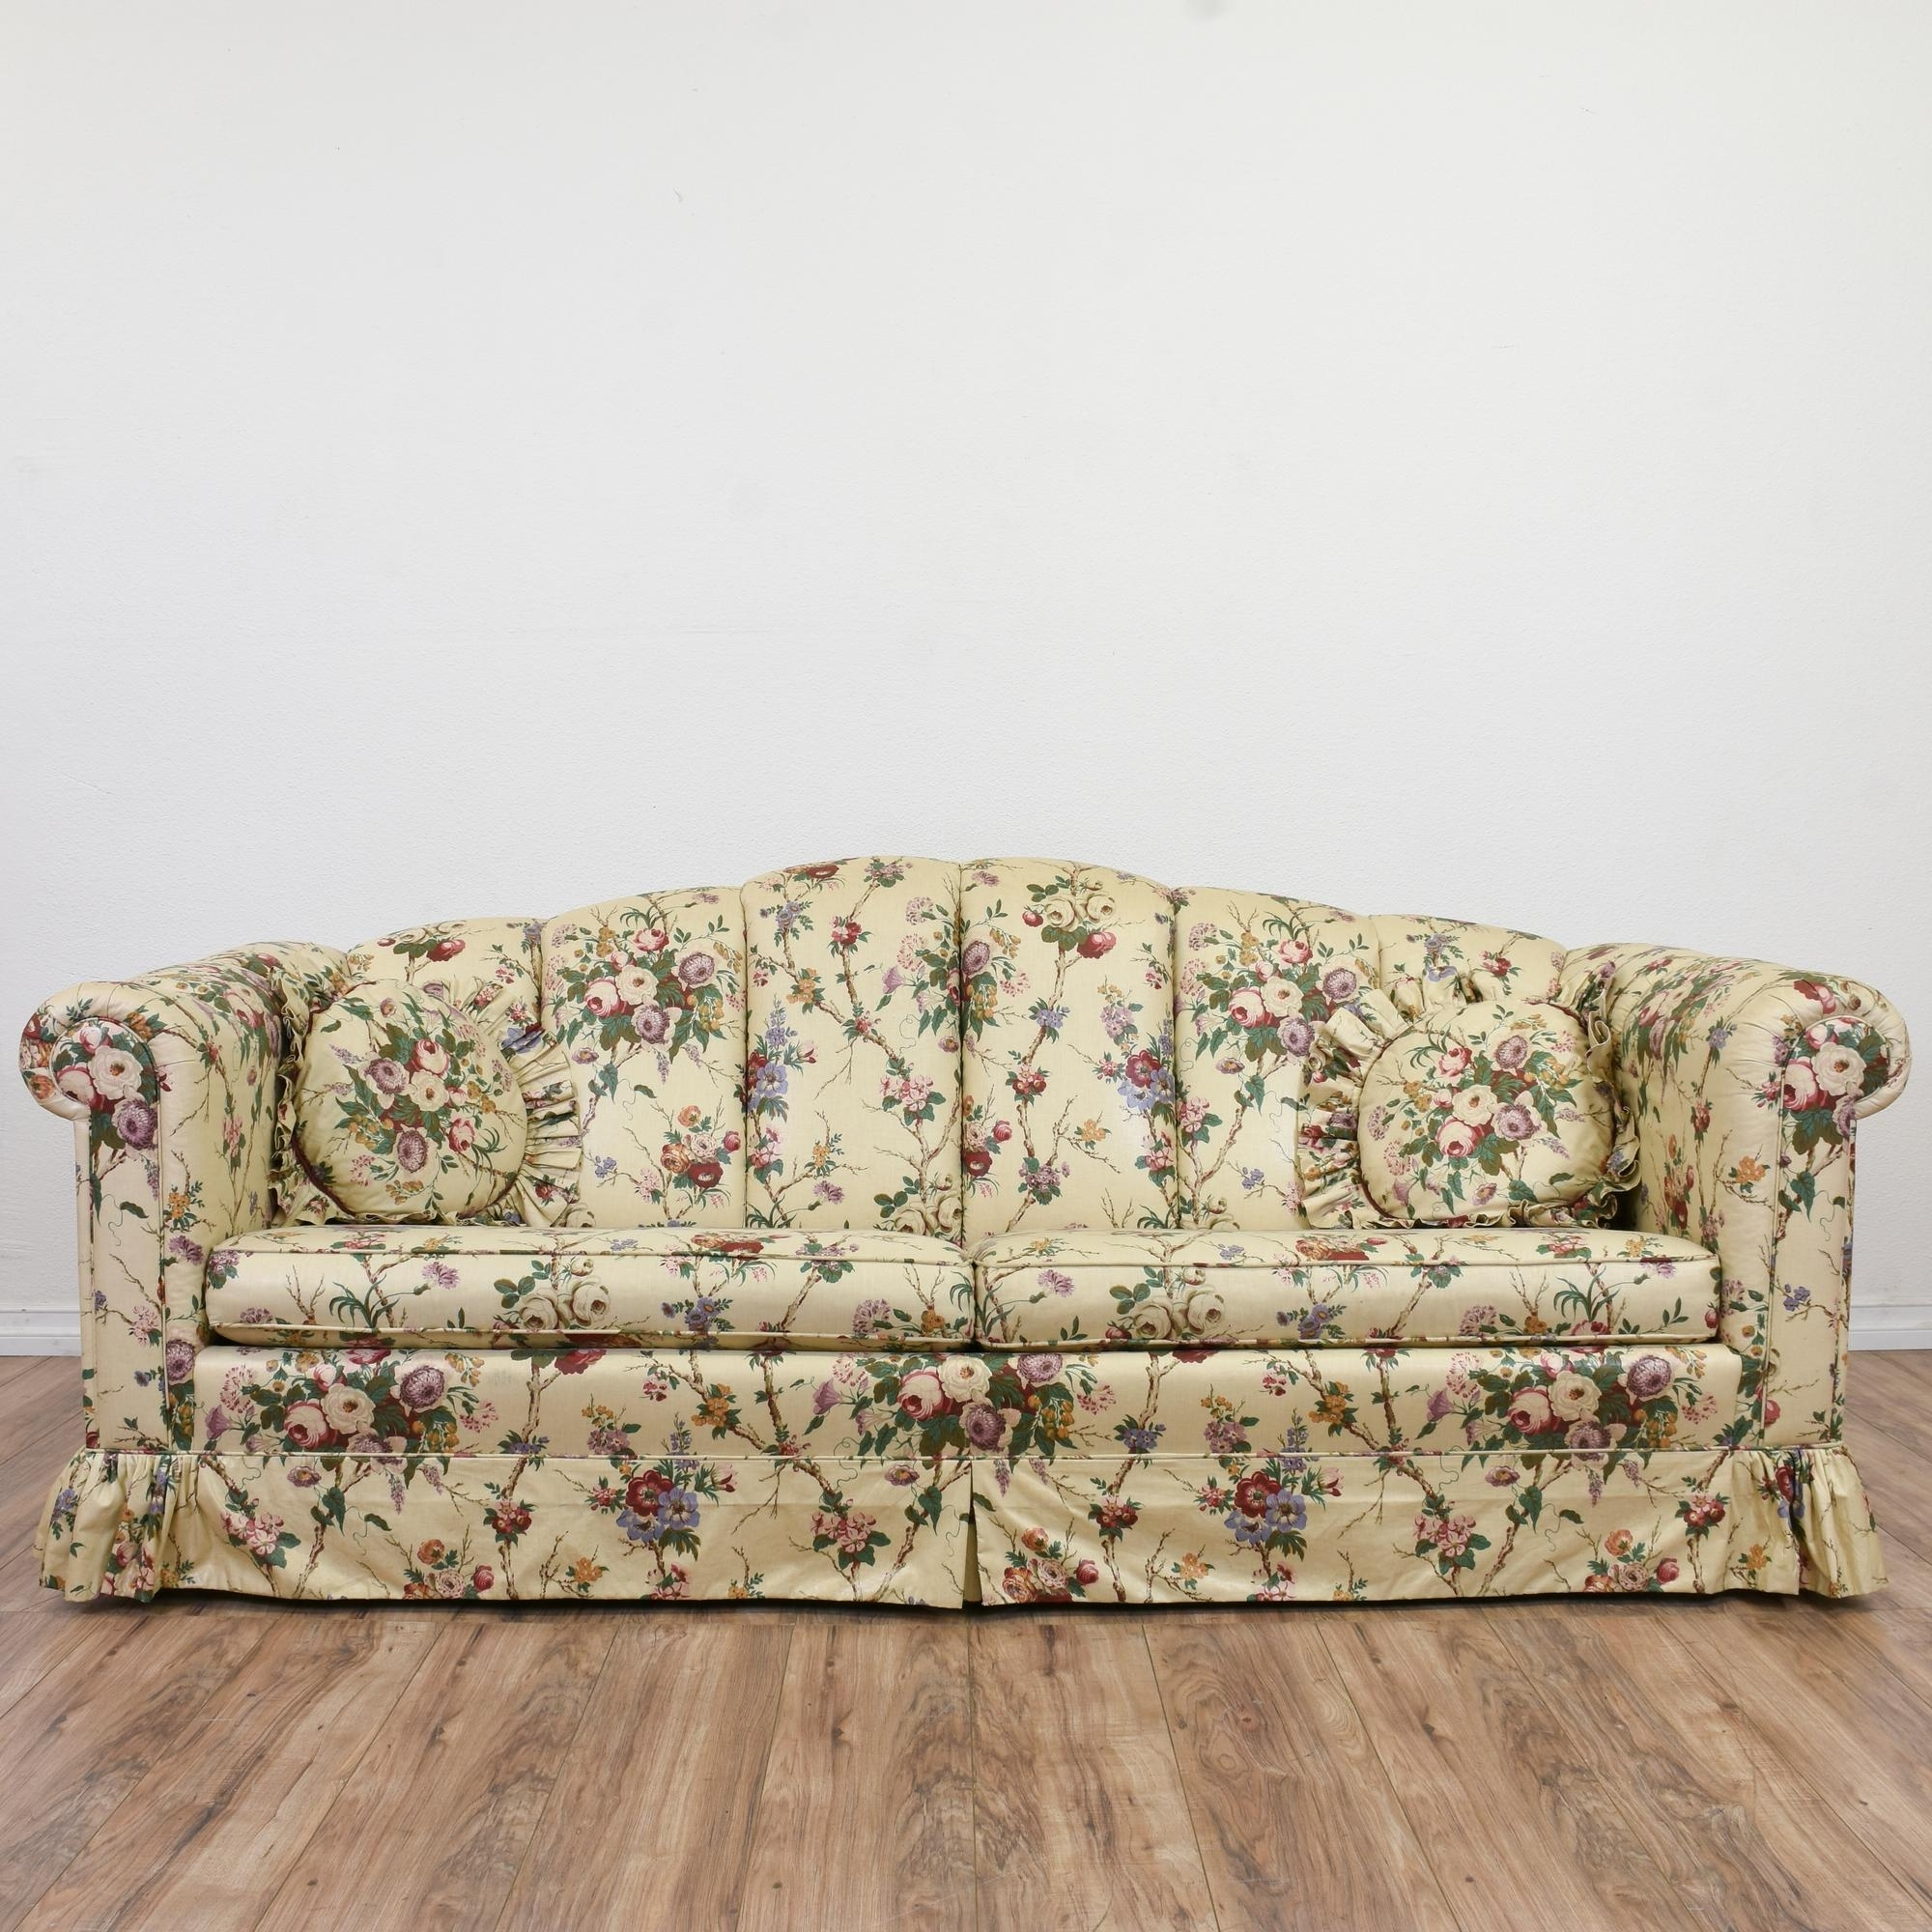 Newest This Sofa Is Upholstered In A Durable Off White Beige, Pink And Within Chintz Fabric Sofas (View 5 of 15)